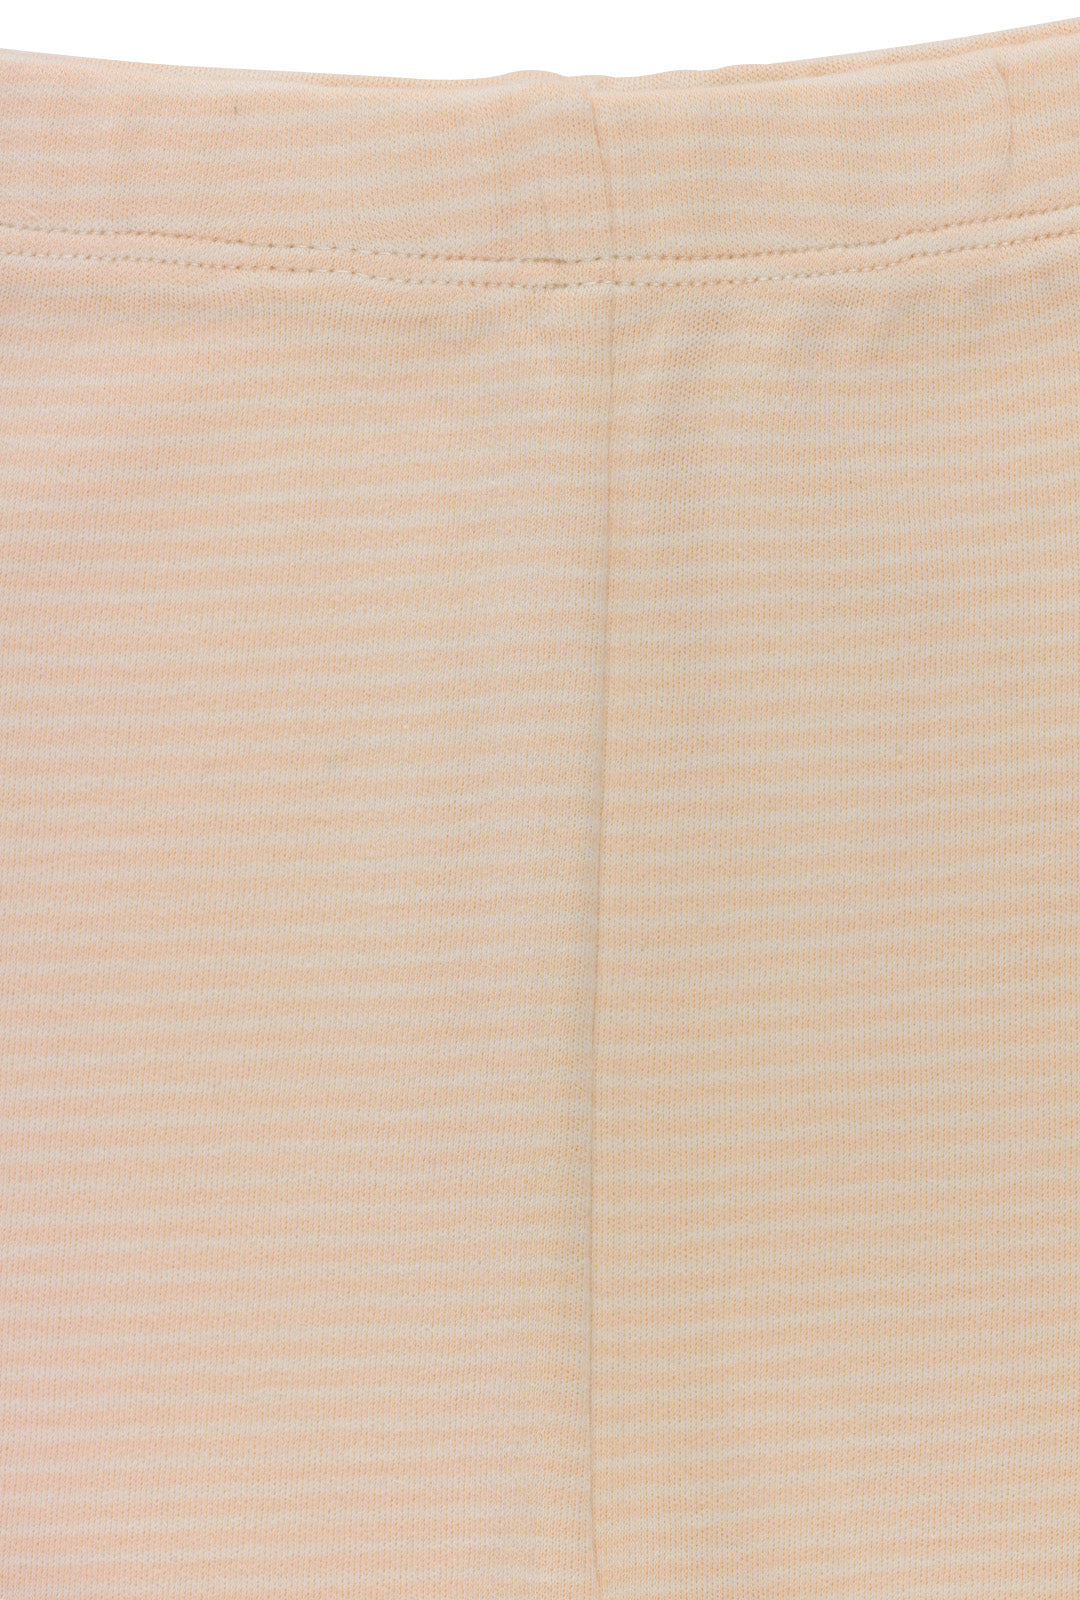 Stripes Natural and Nude Leggings